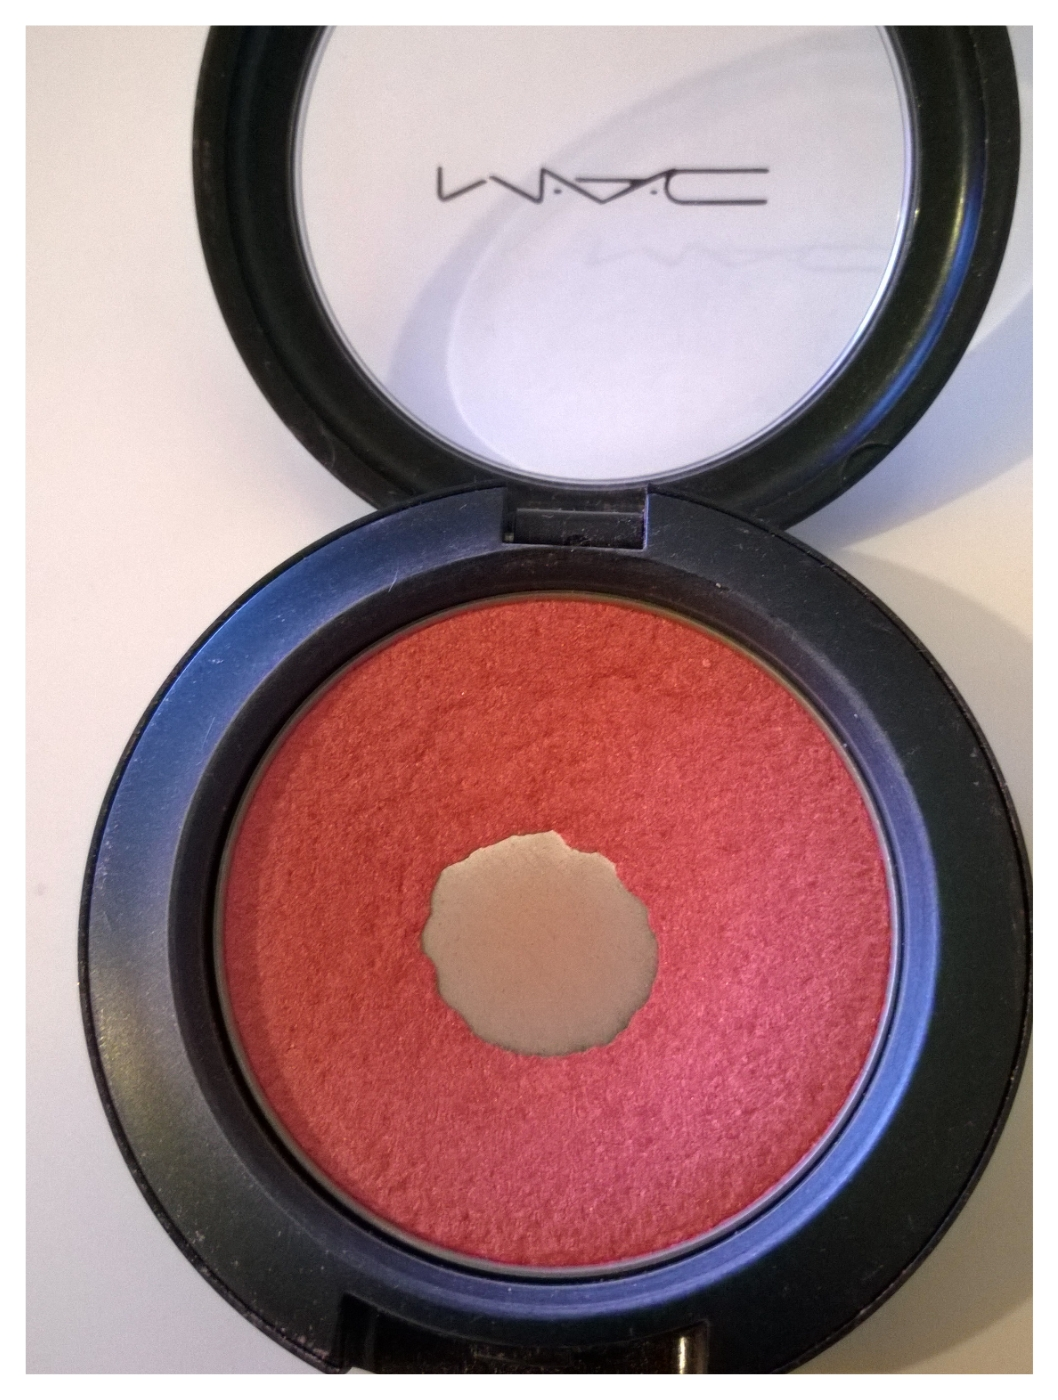 MAC PEACHYKEEN BLUSH: REVIEW AND PICTURES | Ah Sure Tis Lovely